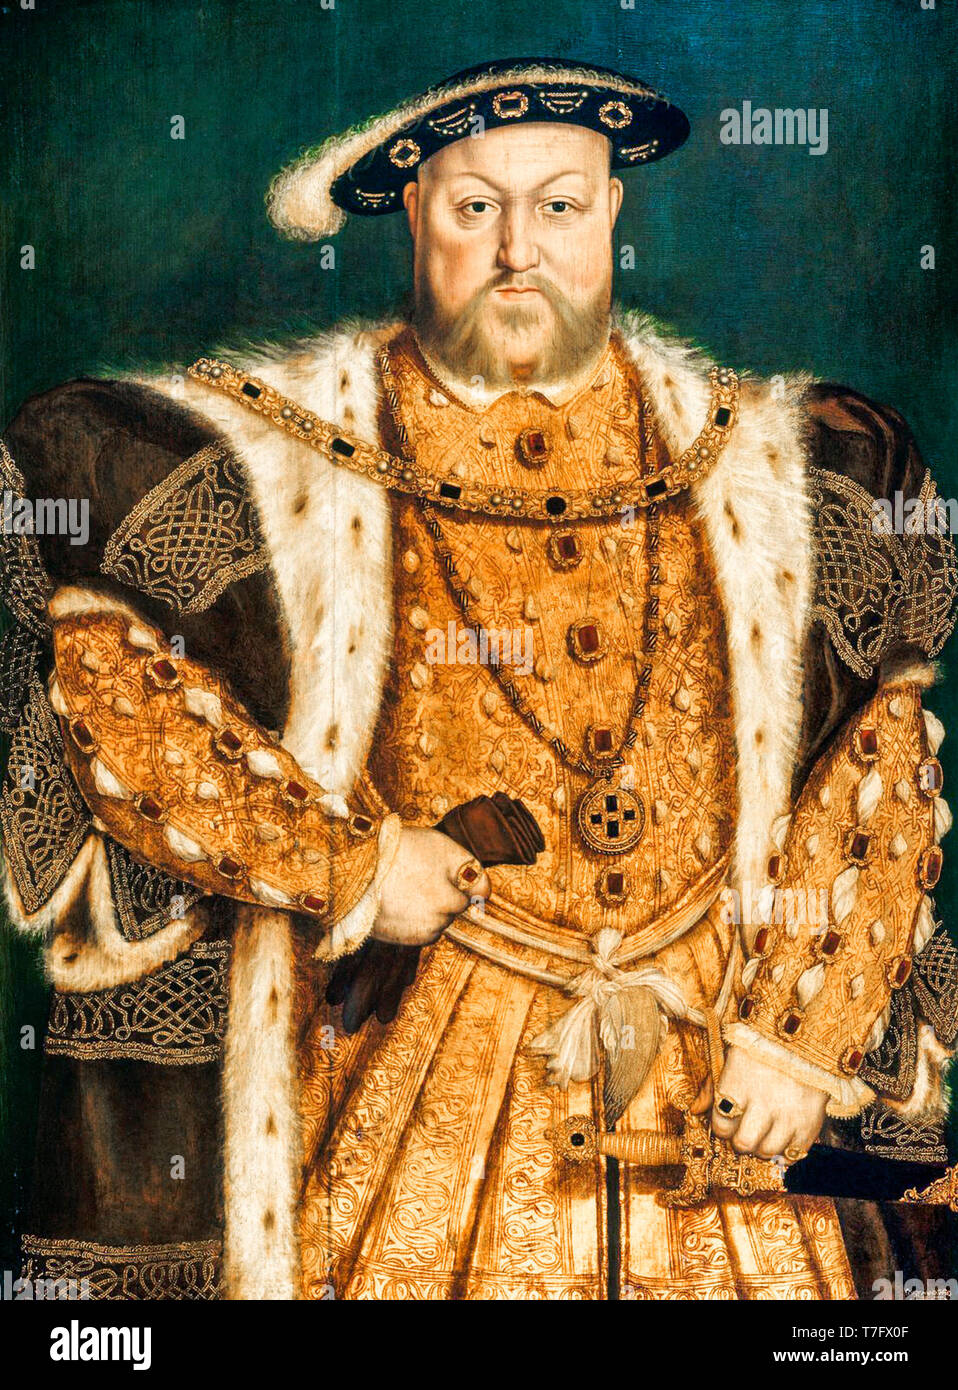 Portrait of Henry VIII (1491-1547), painting after Hans Holbein, c. 1538 Stock Photo